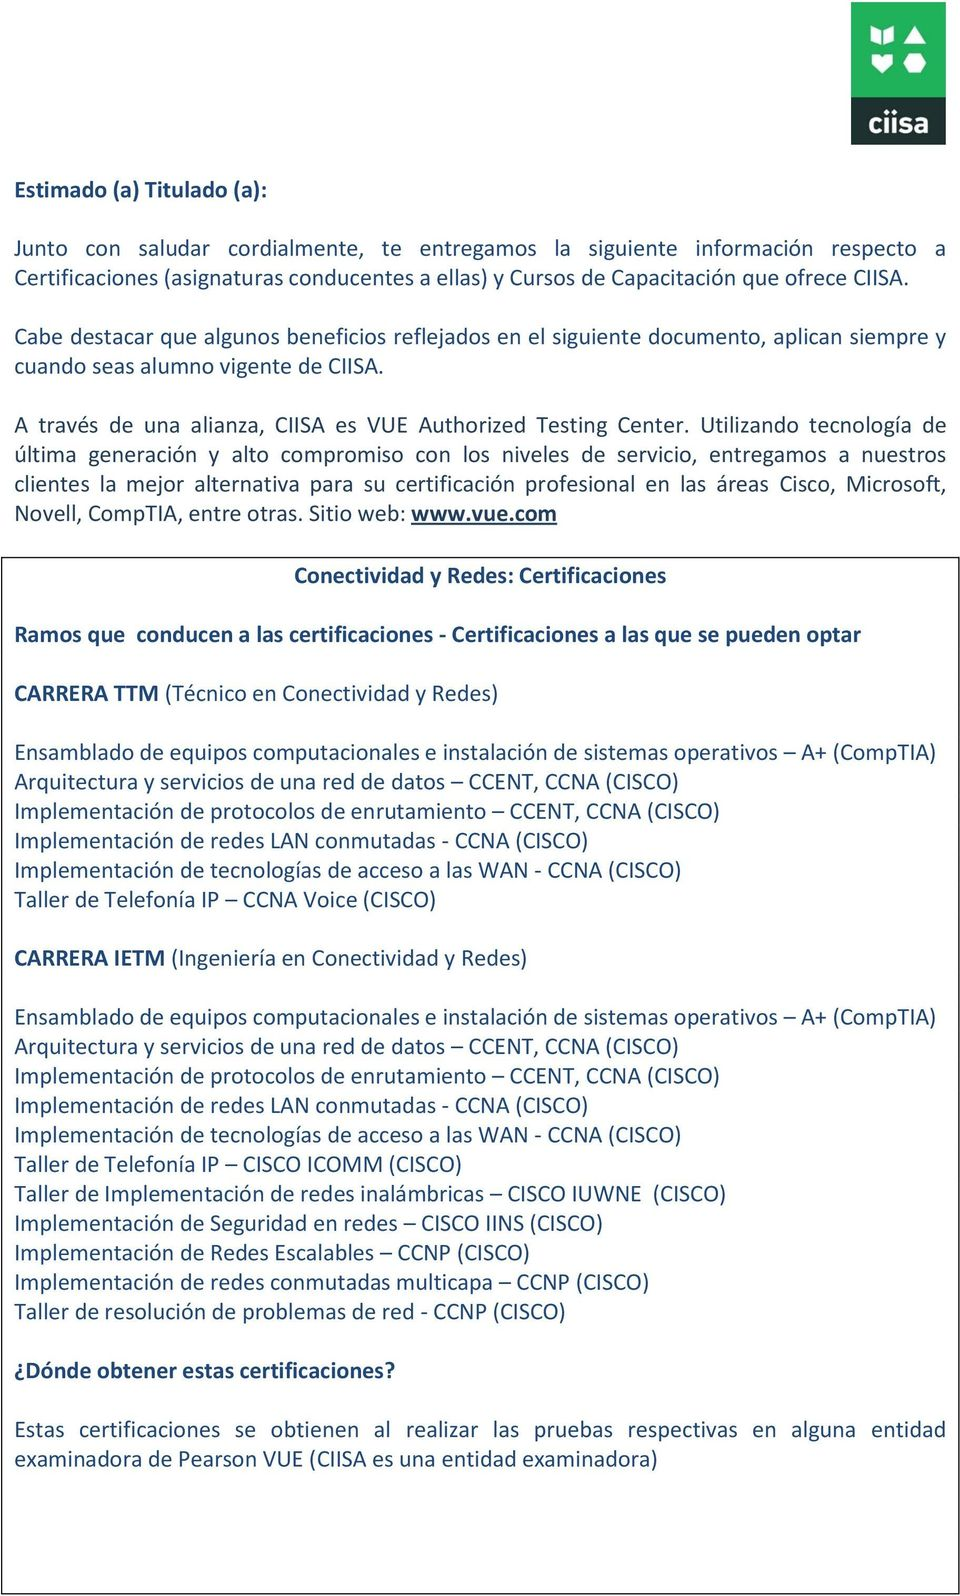 A través de una alianza, CIISA es VUE Authorized Testing Center.